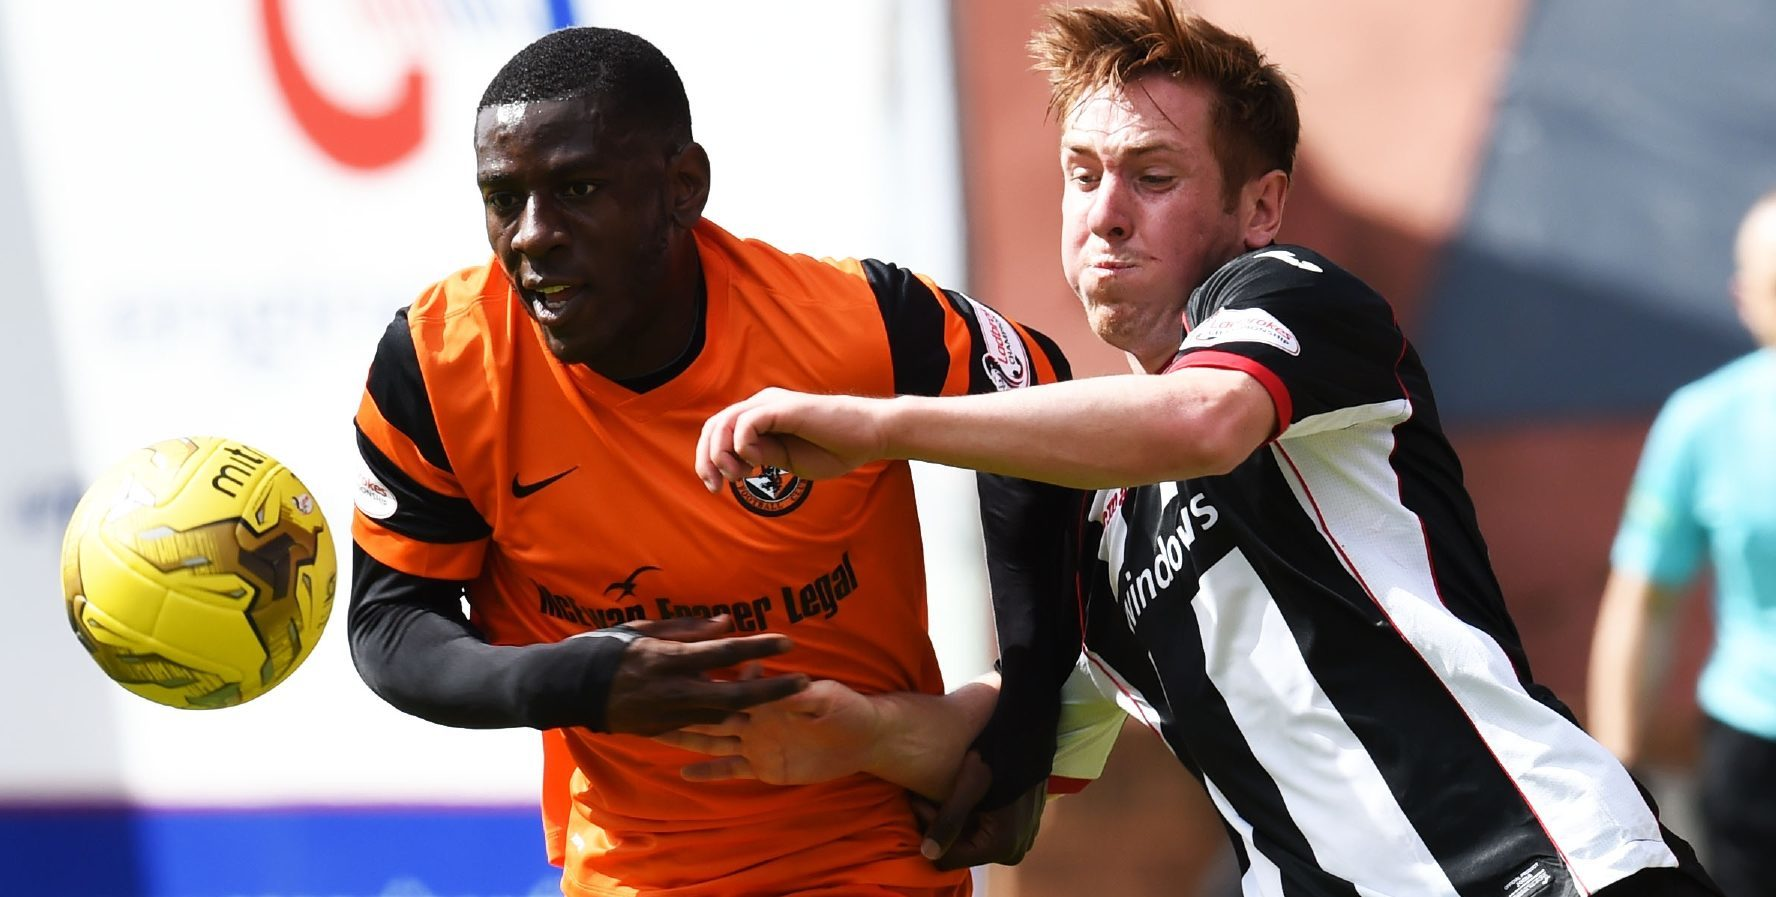 31/07/16 GROUP C BETFRED CUP    DUNDEE UNITED V DUNFERMLINE    TANNADICE - DUNDEE    Dundee United's Tope Obadeyi (L) and Dunfermline's Lewis Martin